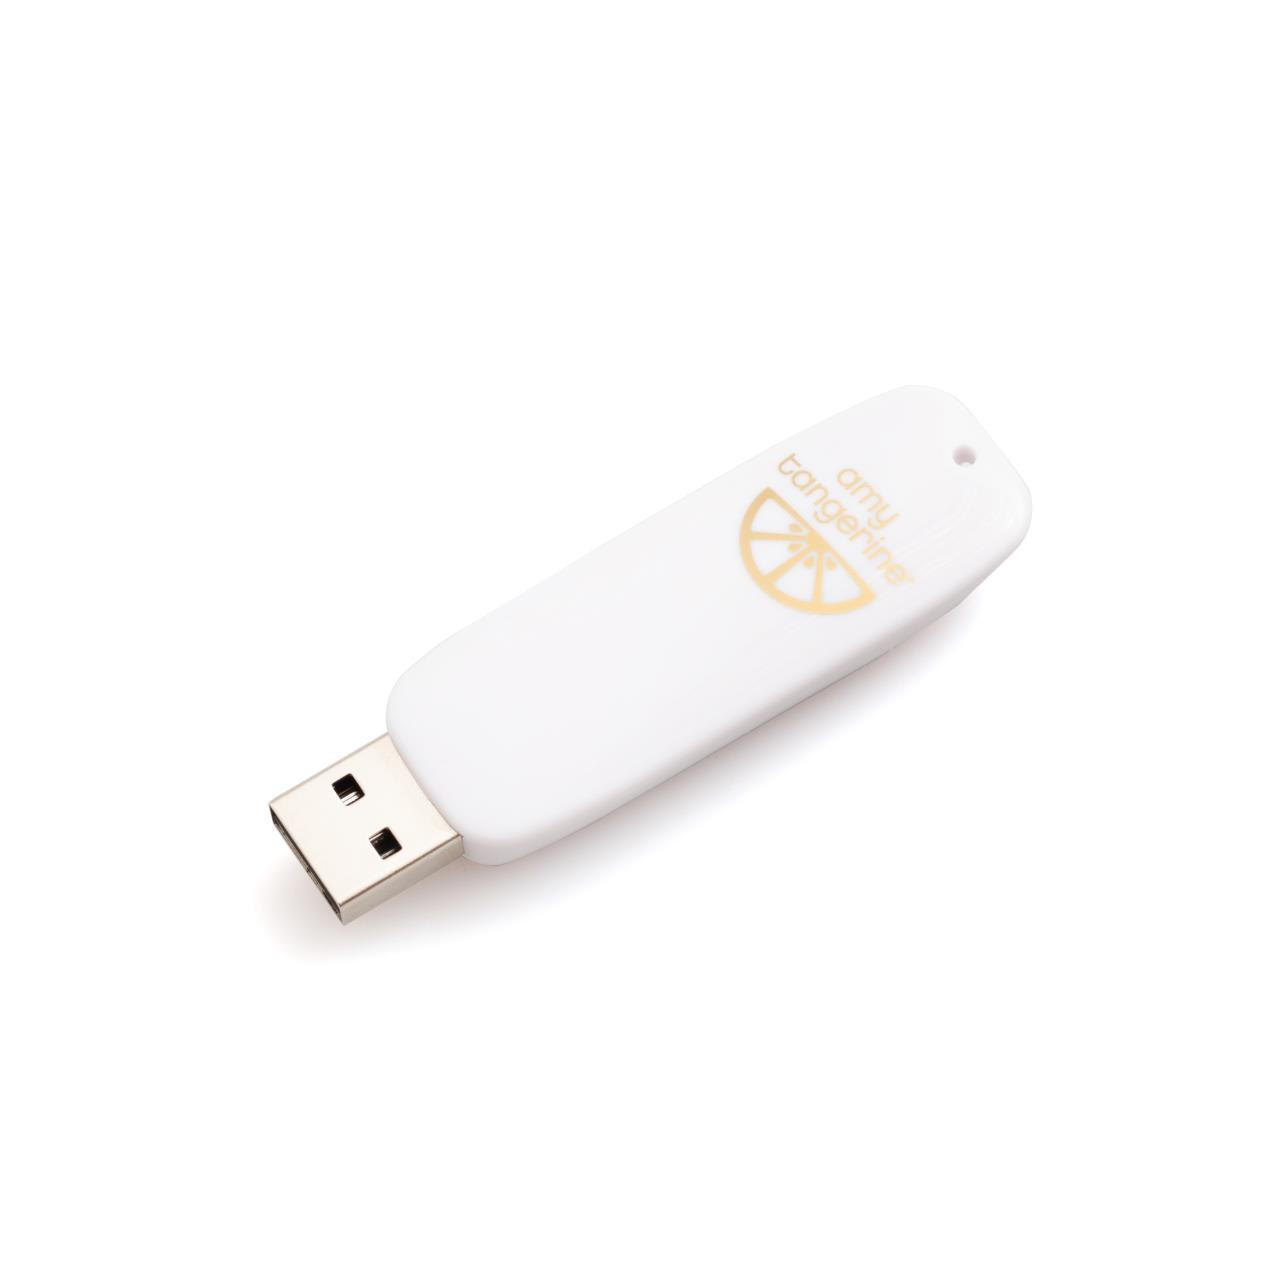 Amy Tangerine - Foil Quill USB Art, We R Memory Keepers - 633356606895